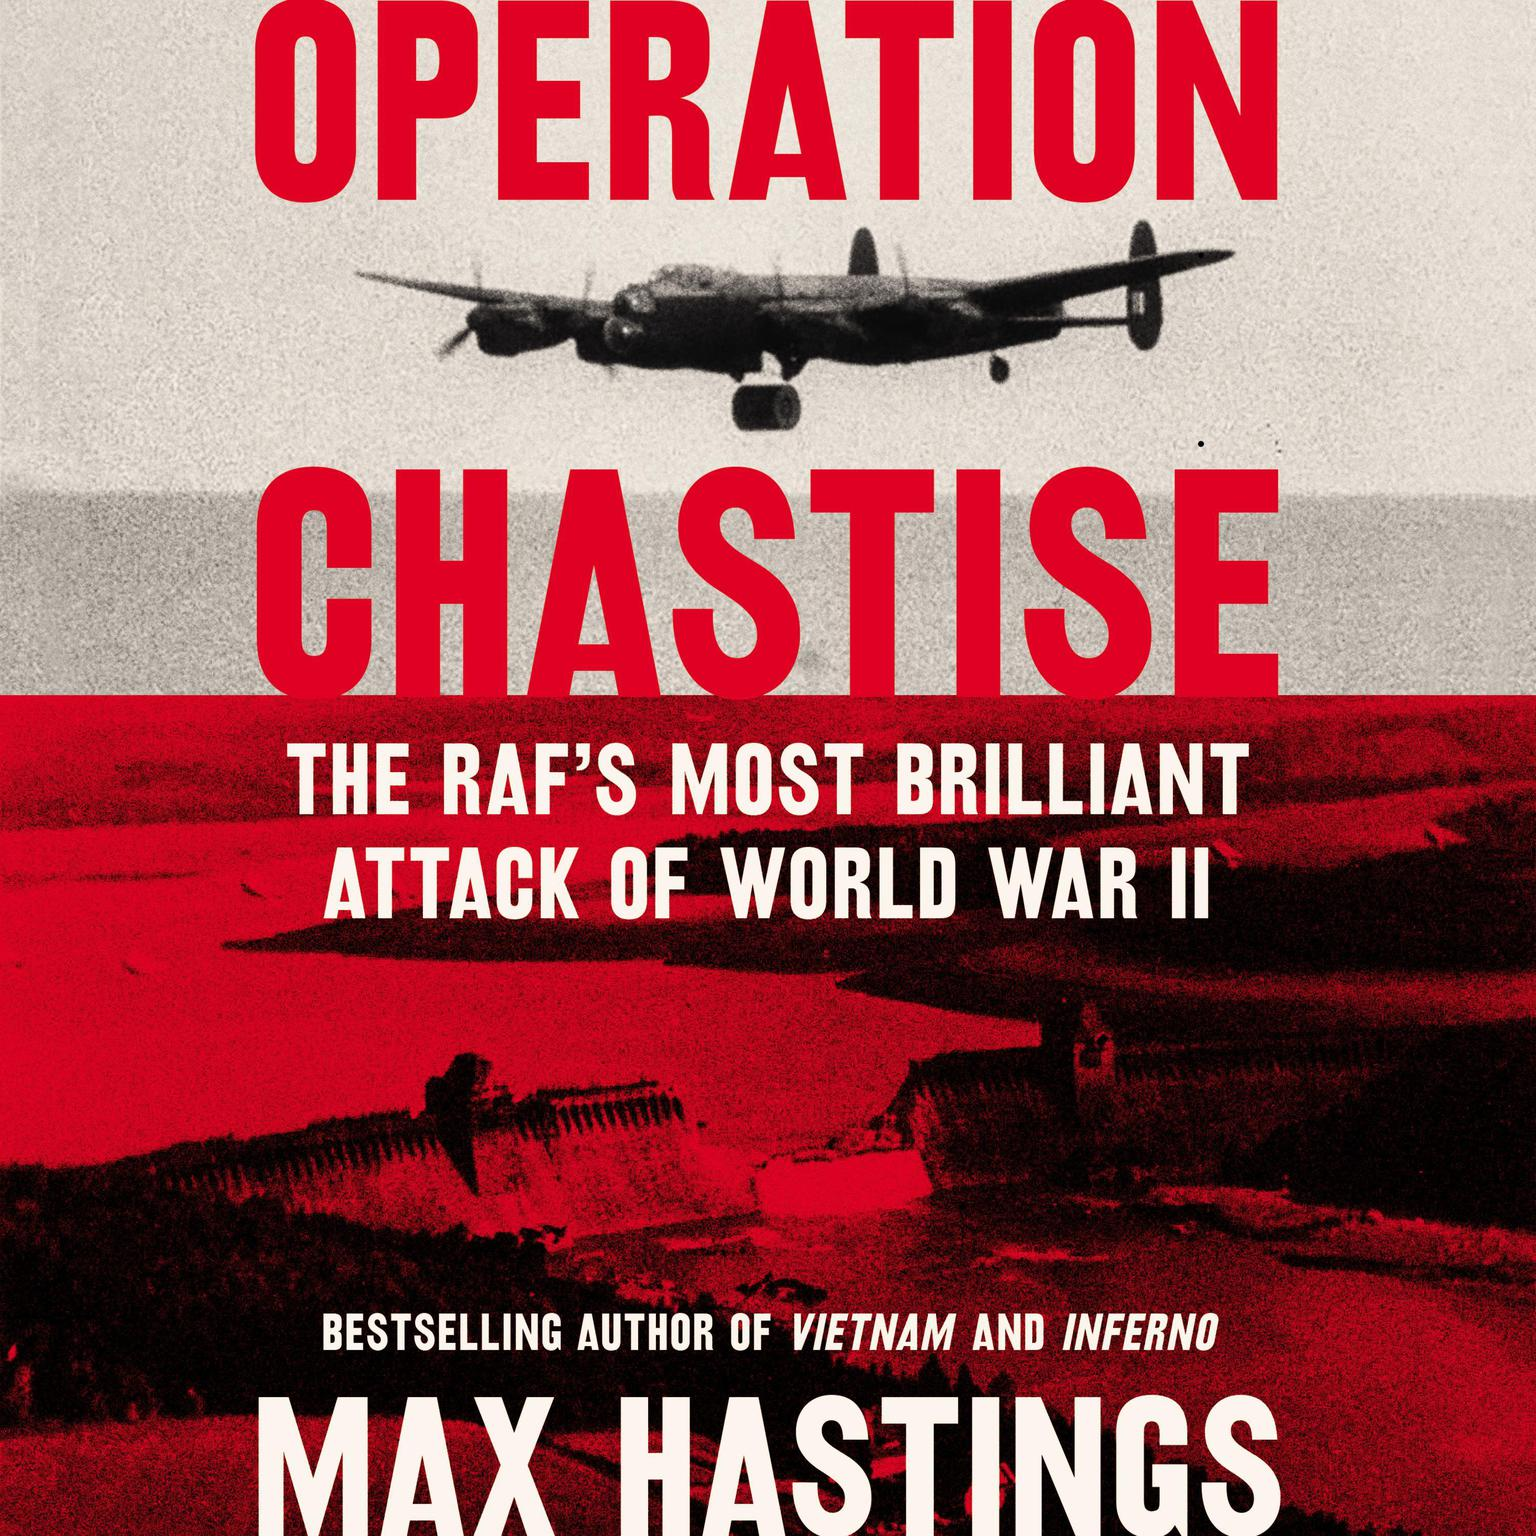 Printable Operation Chastise: The RAF's Most Brilliant Attack of World War II Audiobook Cover Art